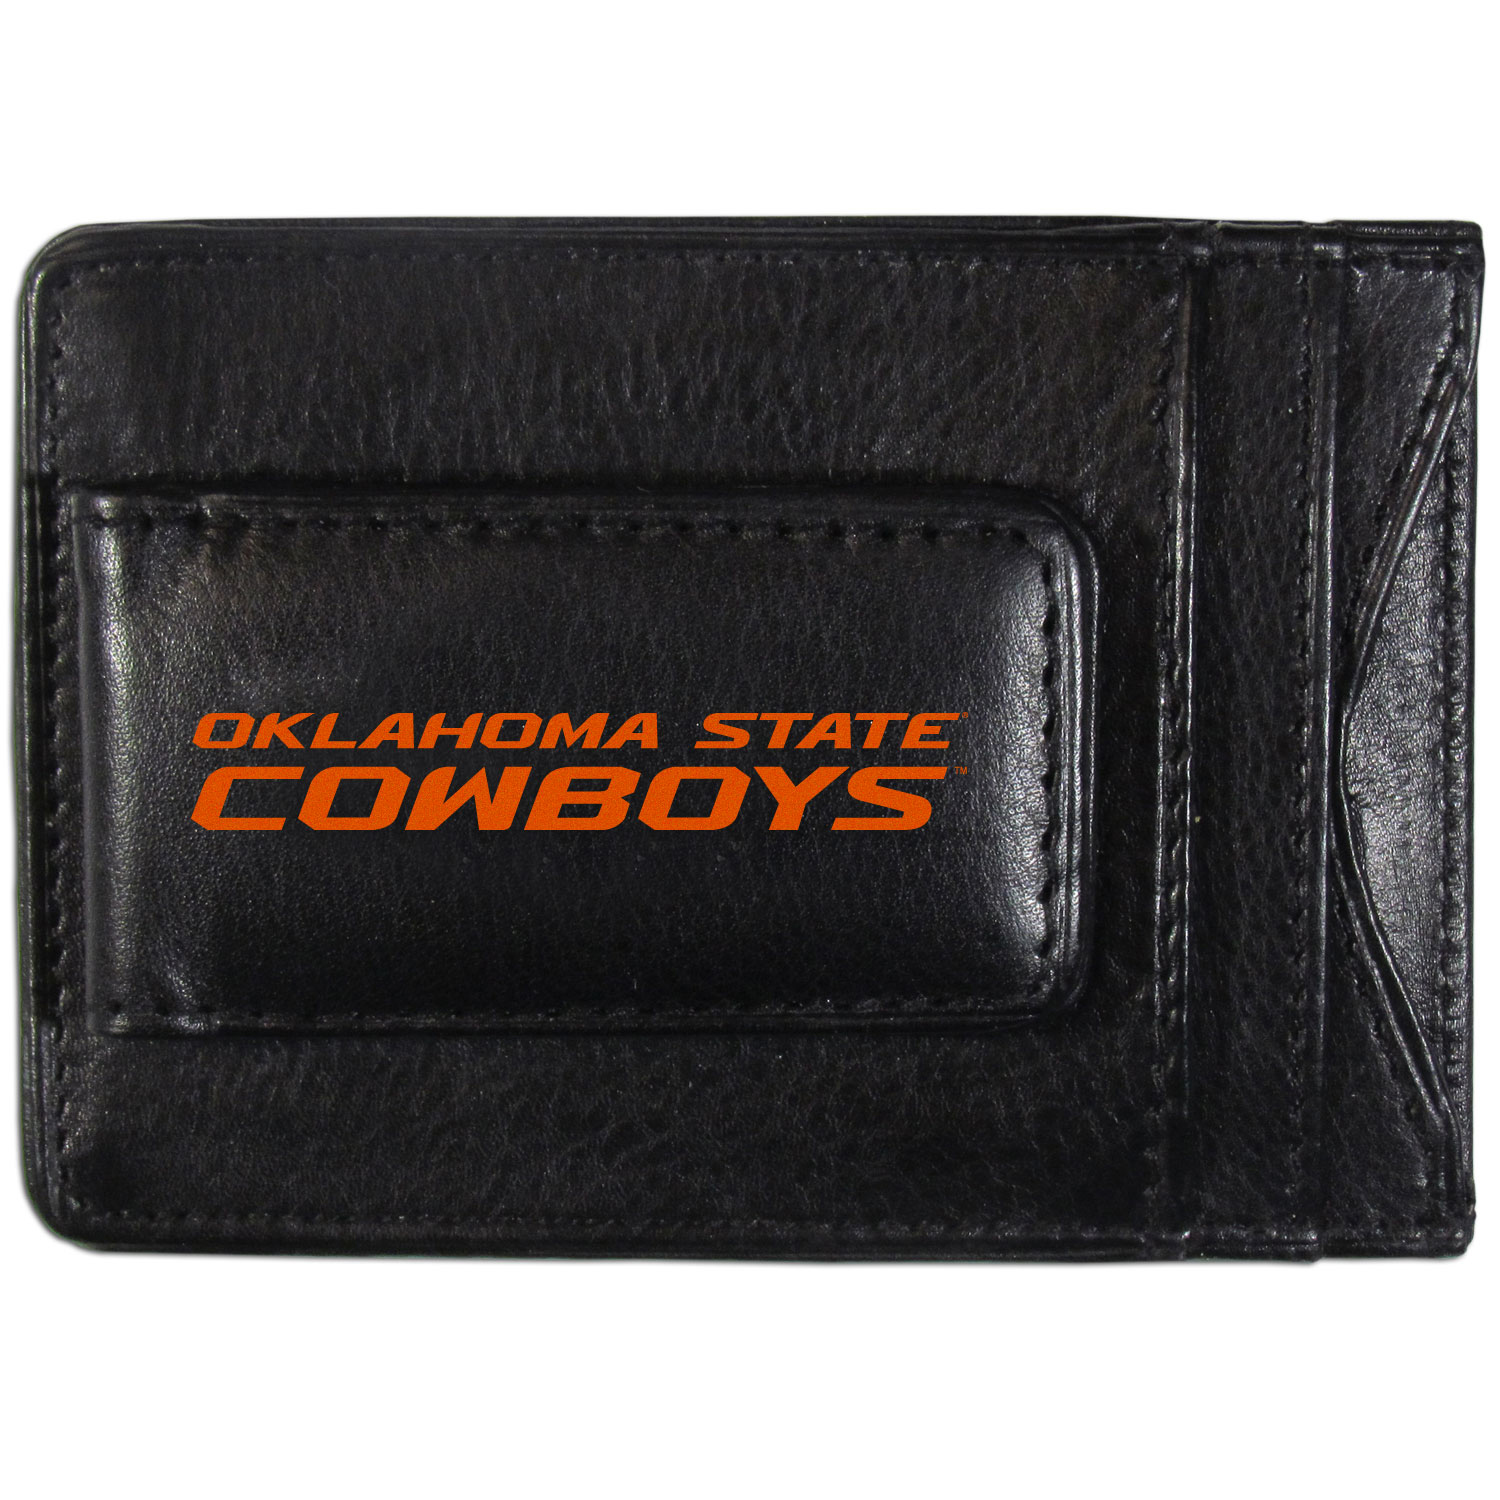 Oklahoma St. Cowboys Logo Leather Cash and Cardholder - This super slim leather wallet lets you have all the benefits of a money clip while keeping the organization of a wallet. On one side of this front pocket wallet there is a strong, magnetic money clip to keep your cash easily accessible and the?Oklahoma St. Cowboys team logo on the front. The versatile men's accessory is a perfect addition to your fan apparel.